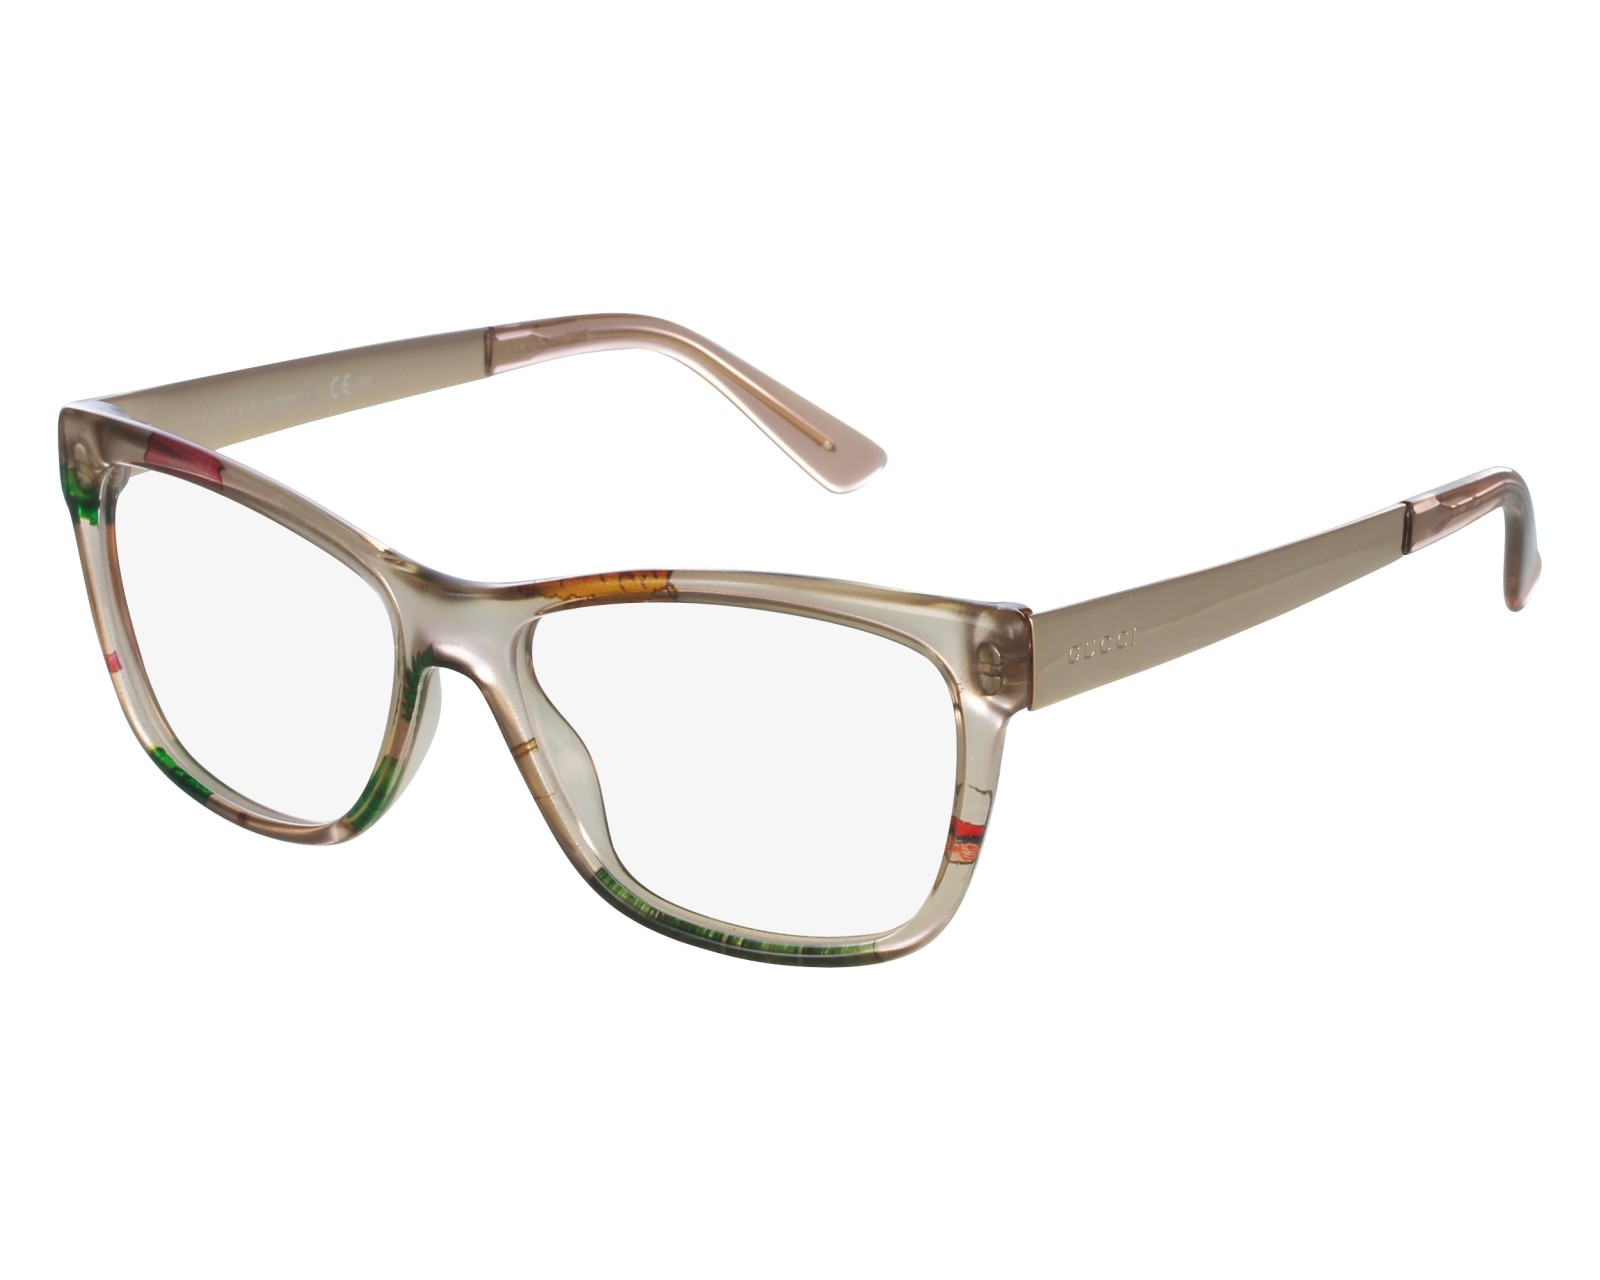 cf2fbe58f3c6d eyeglasses Gucci GG-3741 2FX - Beige Rose gold front view